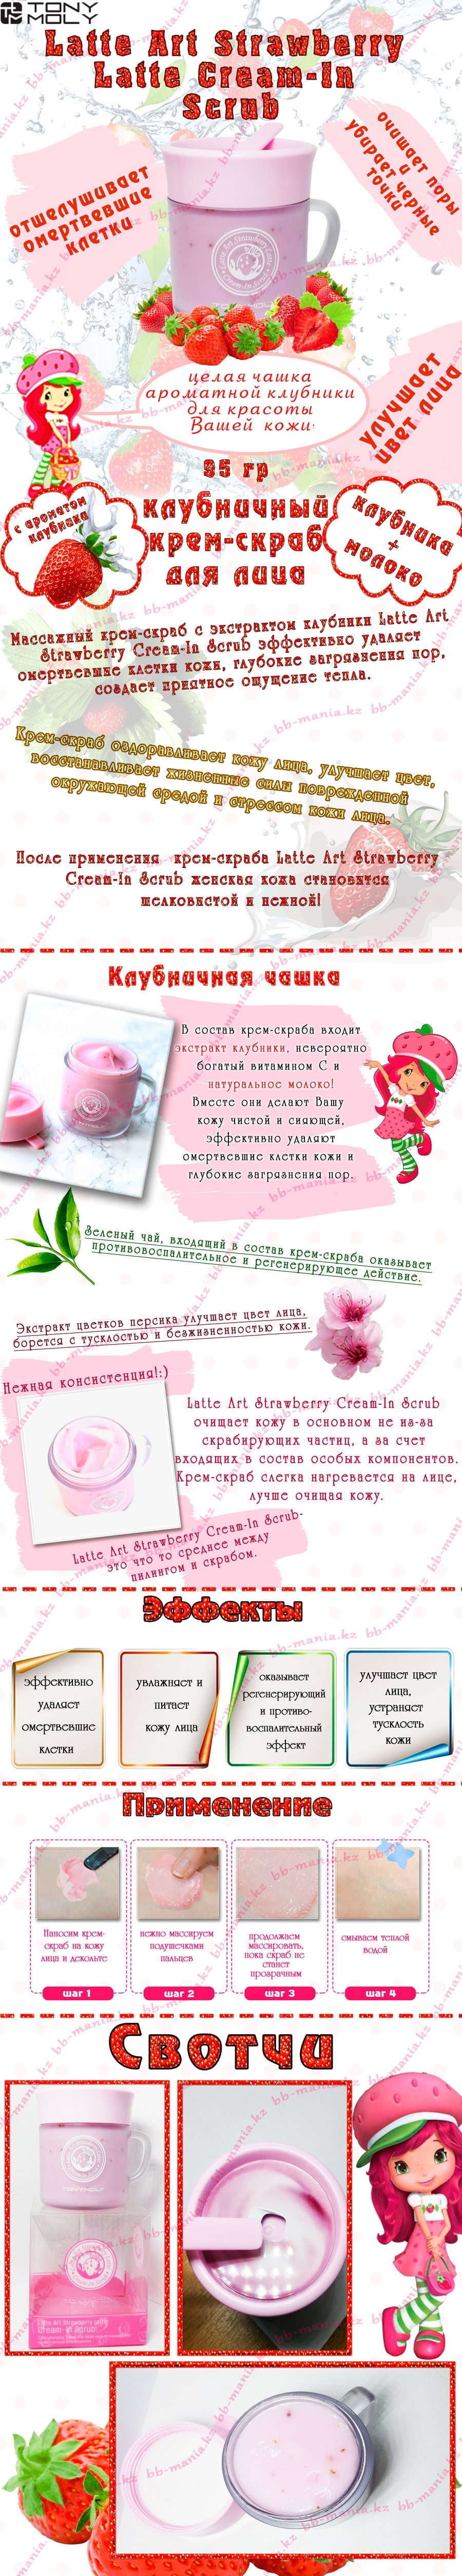 latte-art-strawberry-scrub_ (1)-min